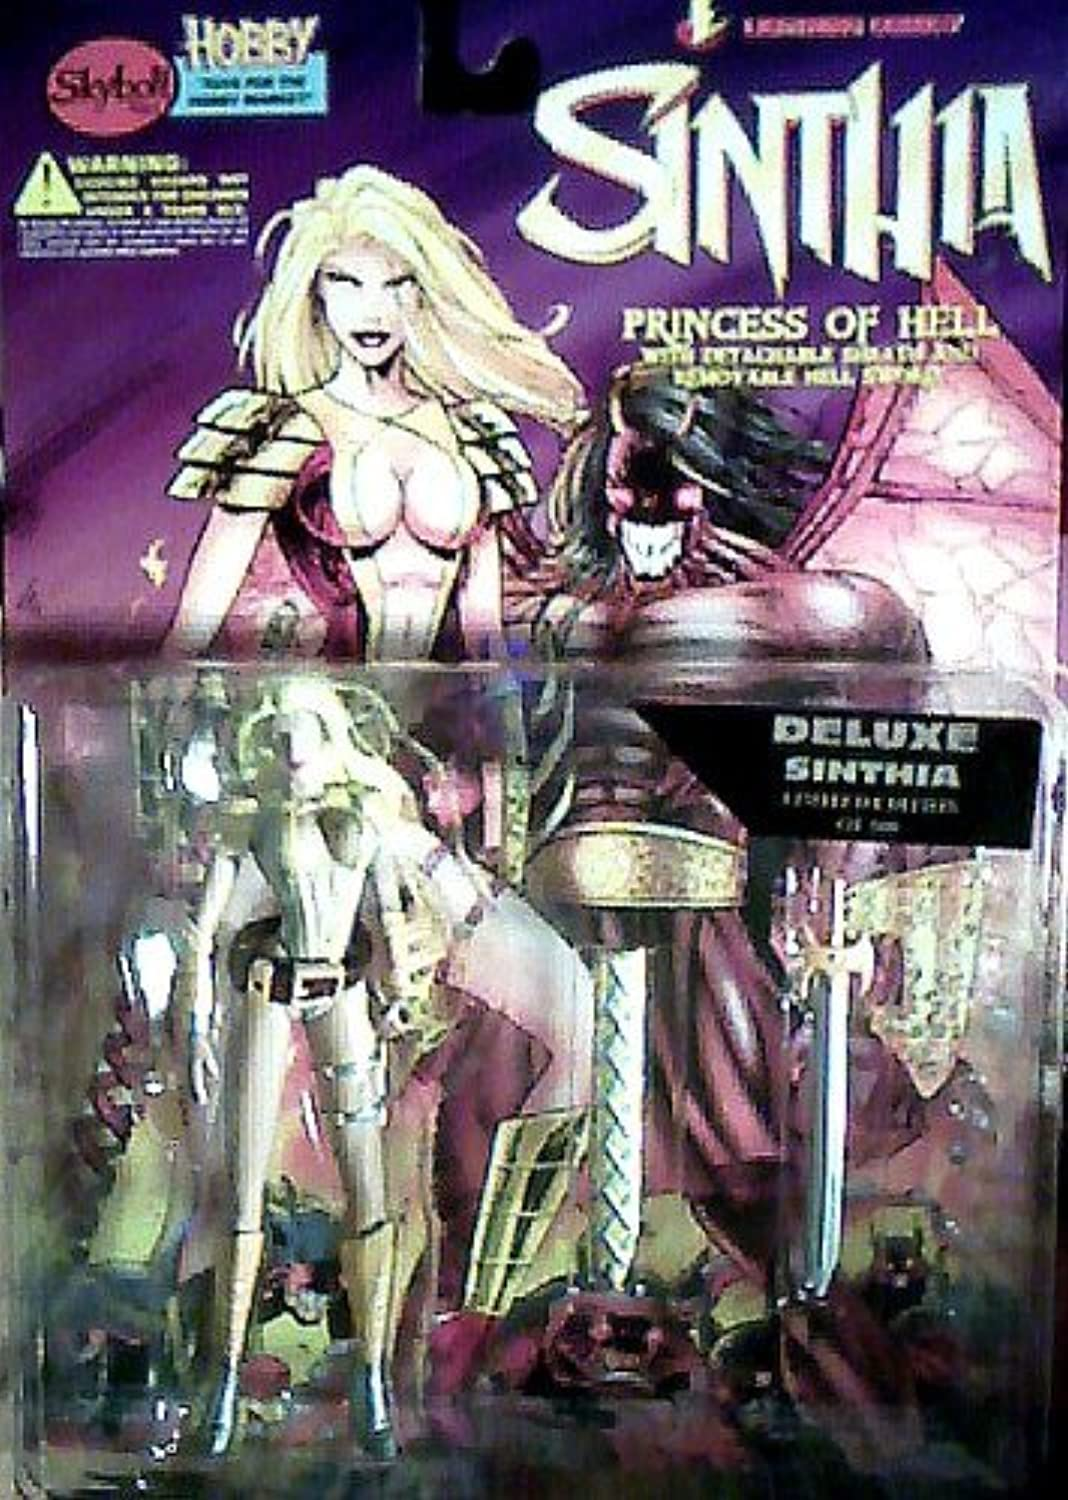 6 Deluxe Sinthia Limited Edition of 500 Action Figure - Lightning Comics' Sinthia, Princess of Hell Series by Skybolt Toyz